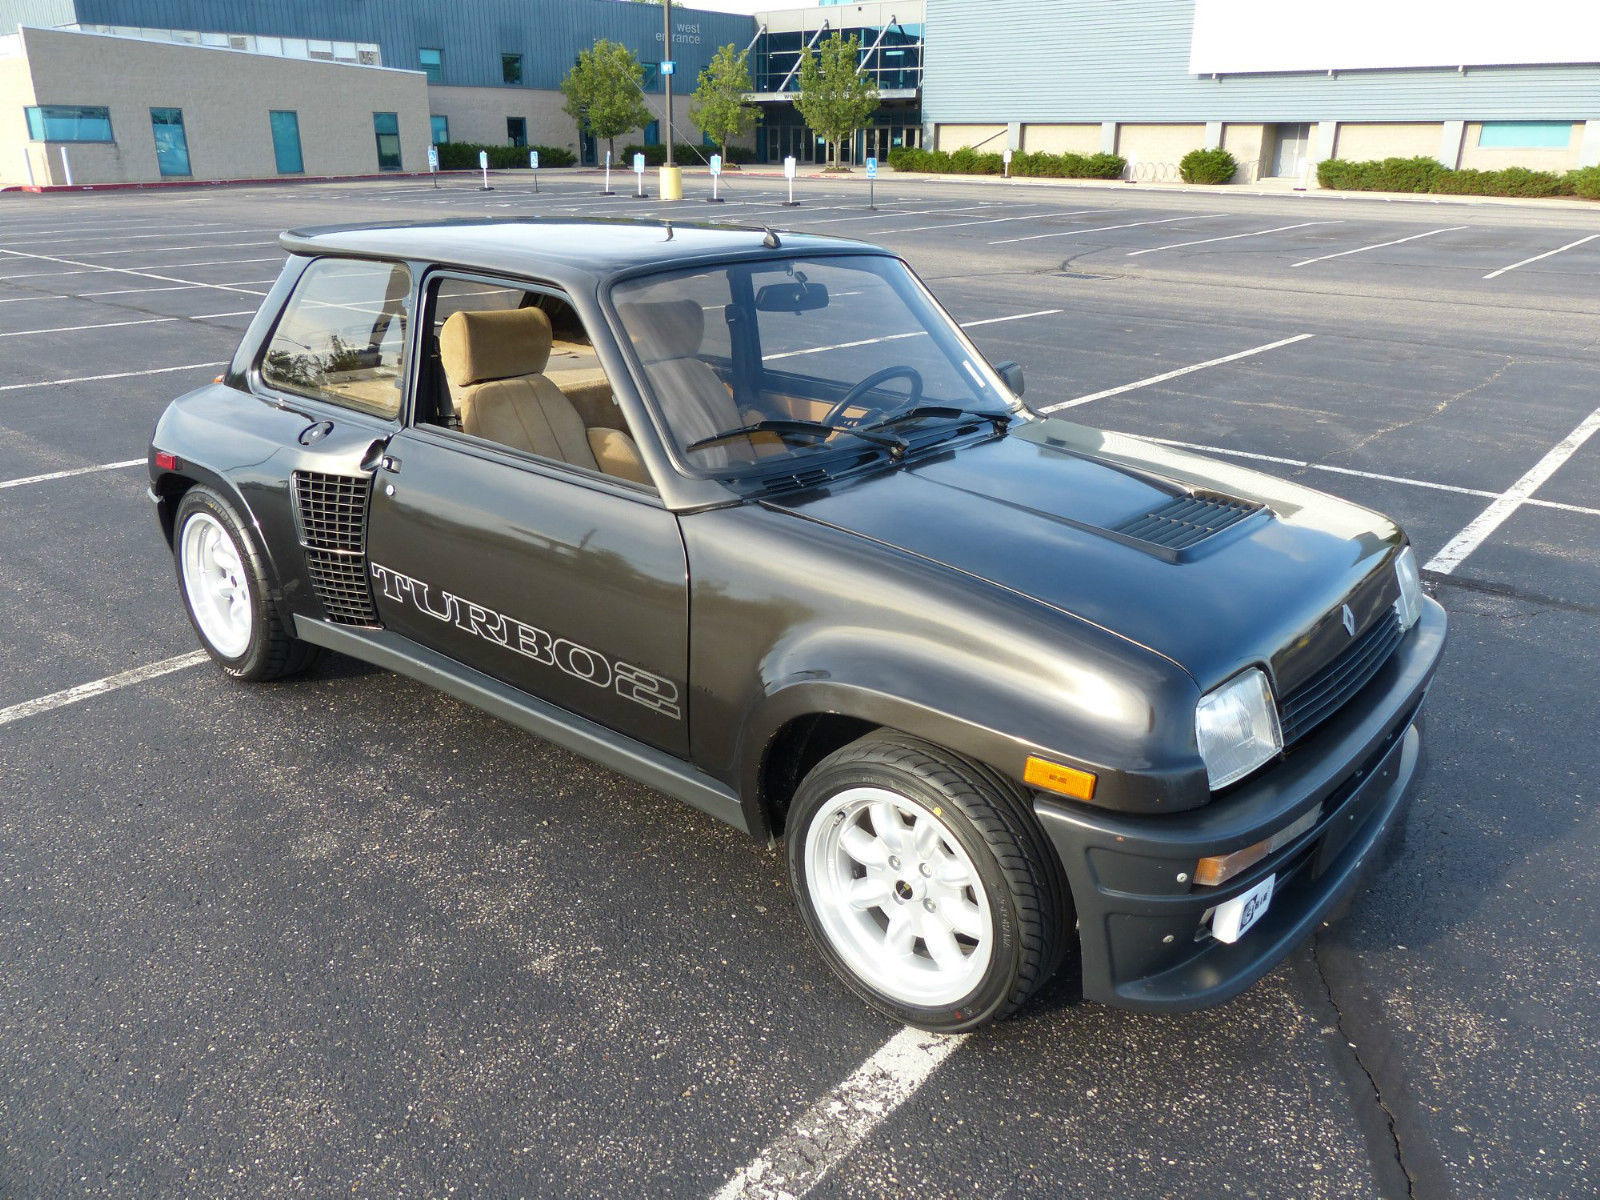 original renault 5 turbo fetches 72 000 on ebay carscoops. Black Bedroom Furniture Sets. Home Design Ideas